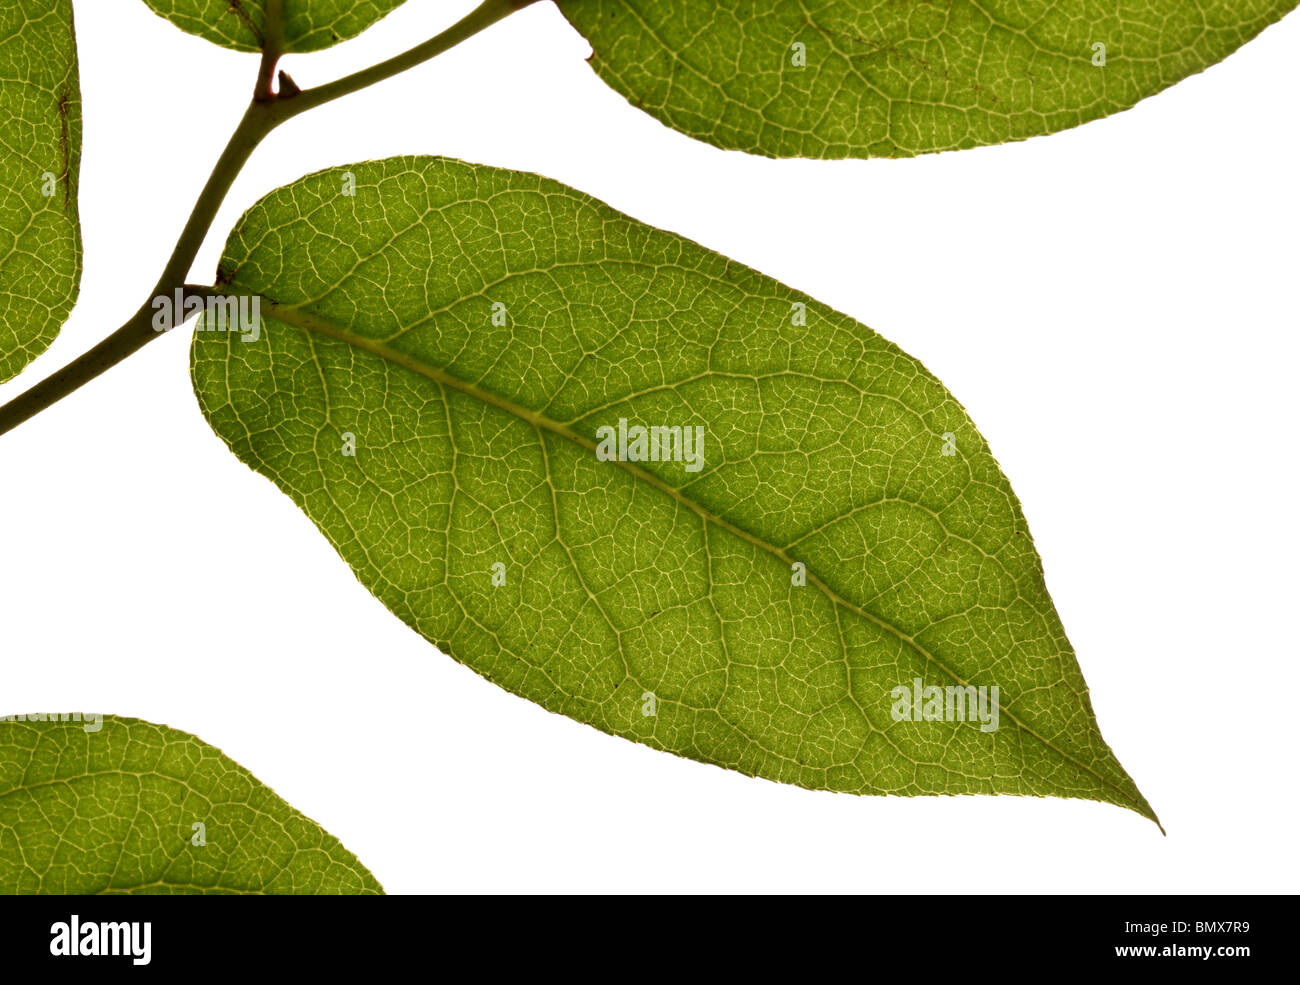 Green plant leaves on a branch, white background - Stock Image